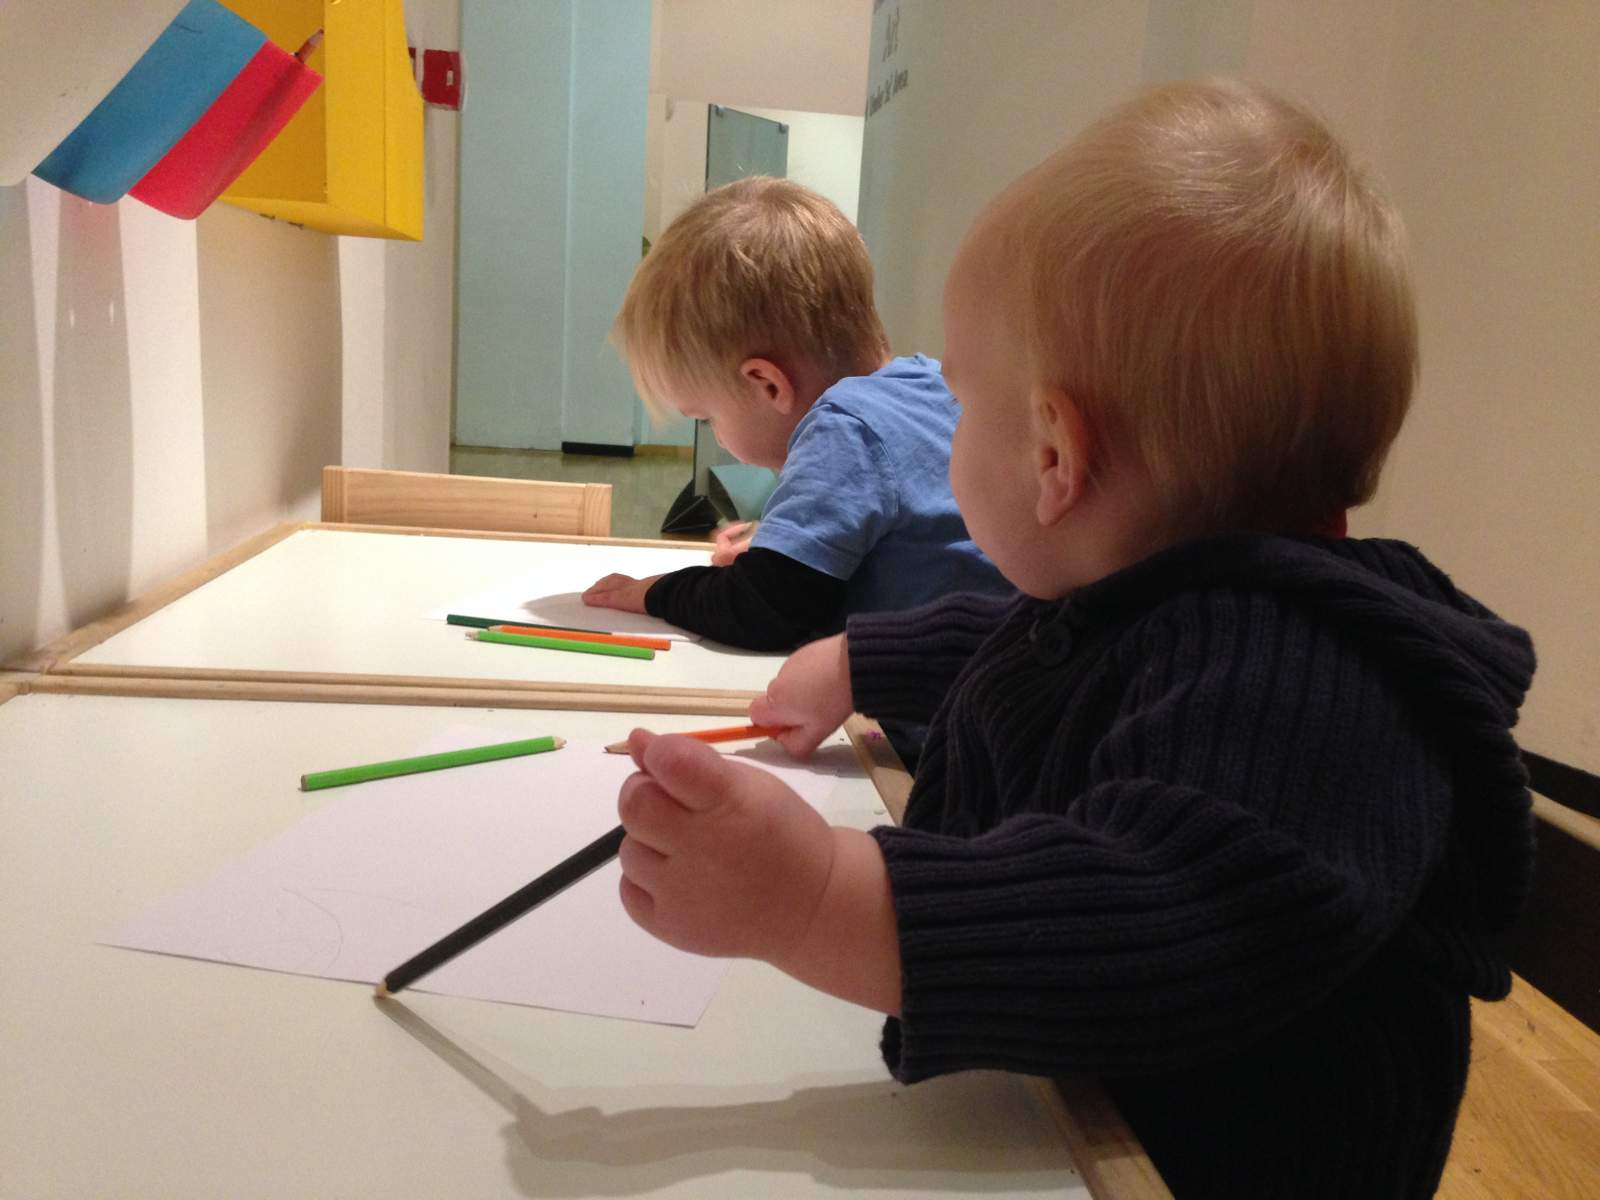 artists hard at work in the Laing Art Gallery in Newcastle upon Tyne